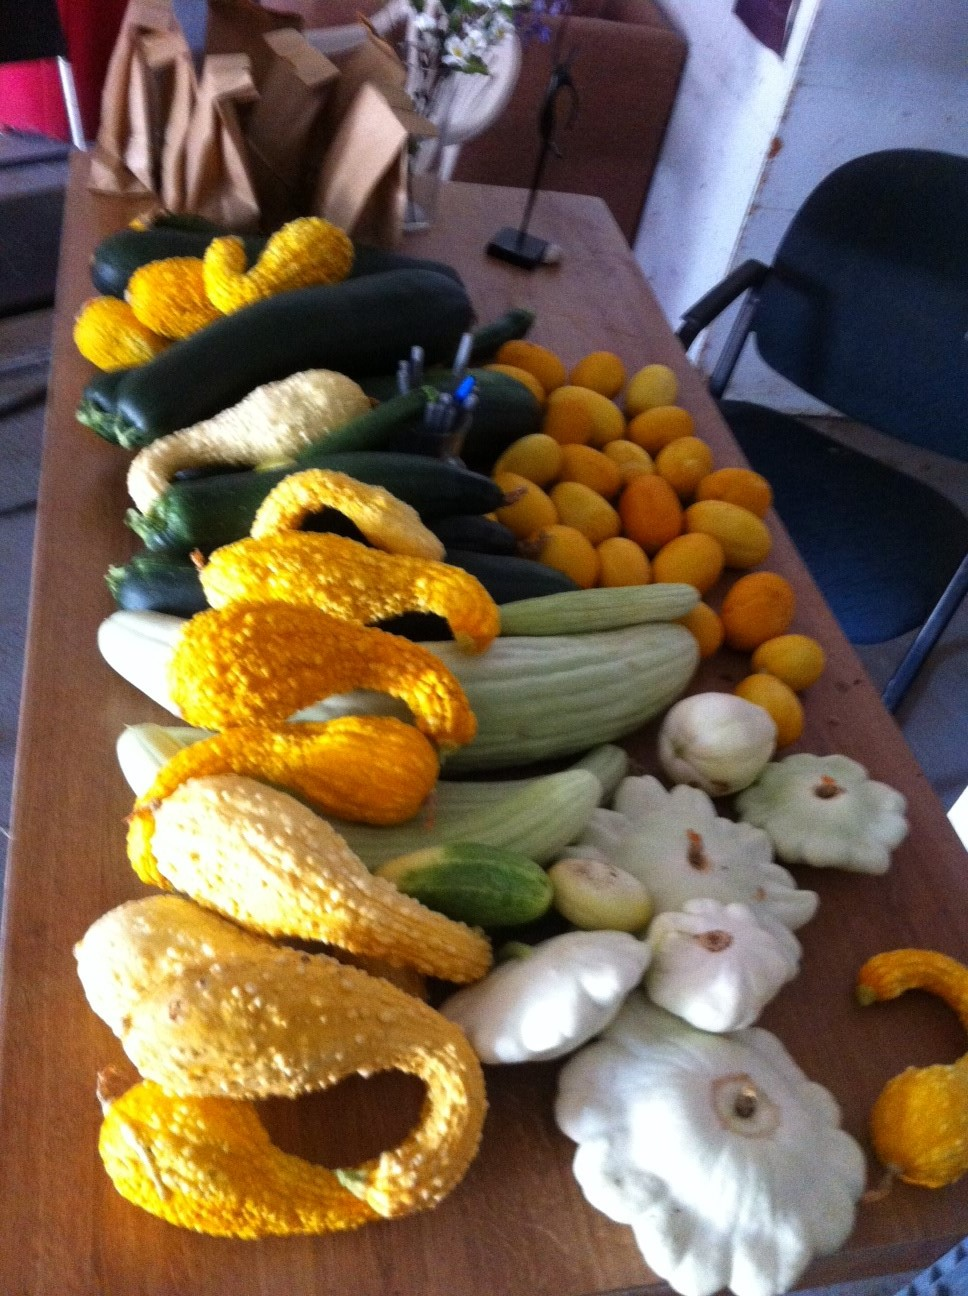 Various squash and other vegetables